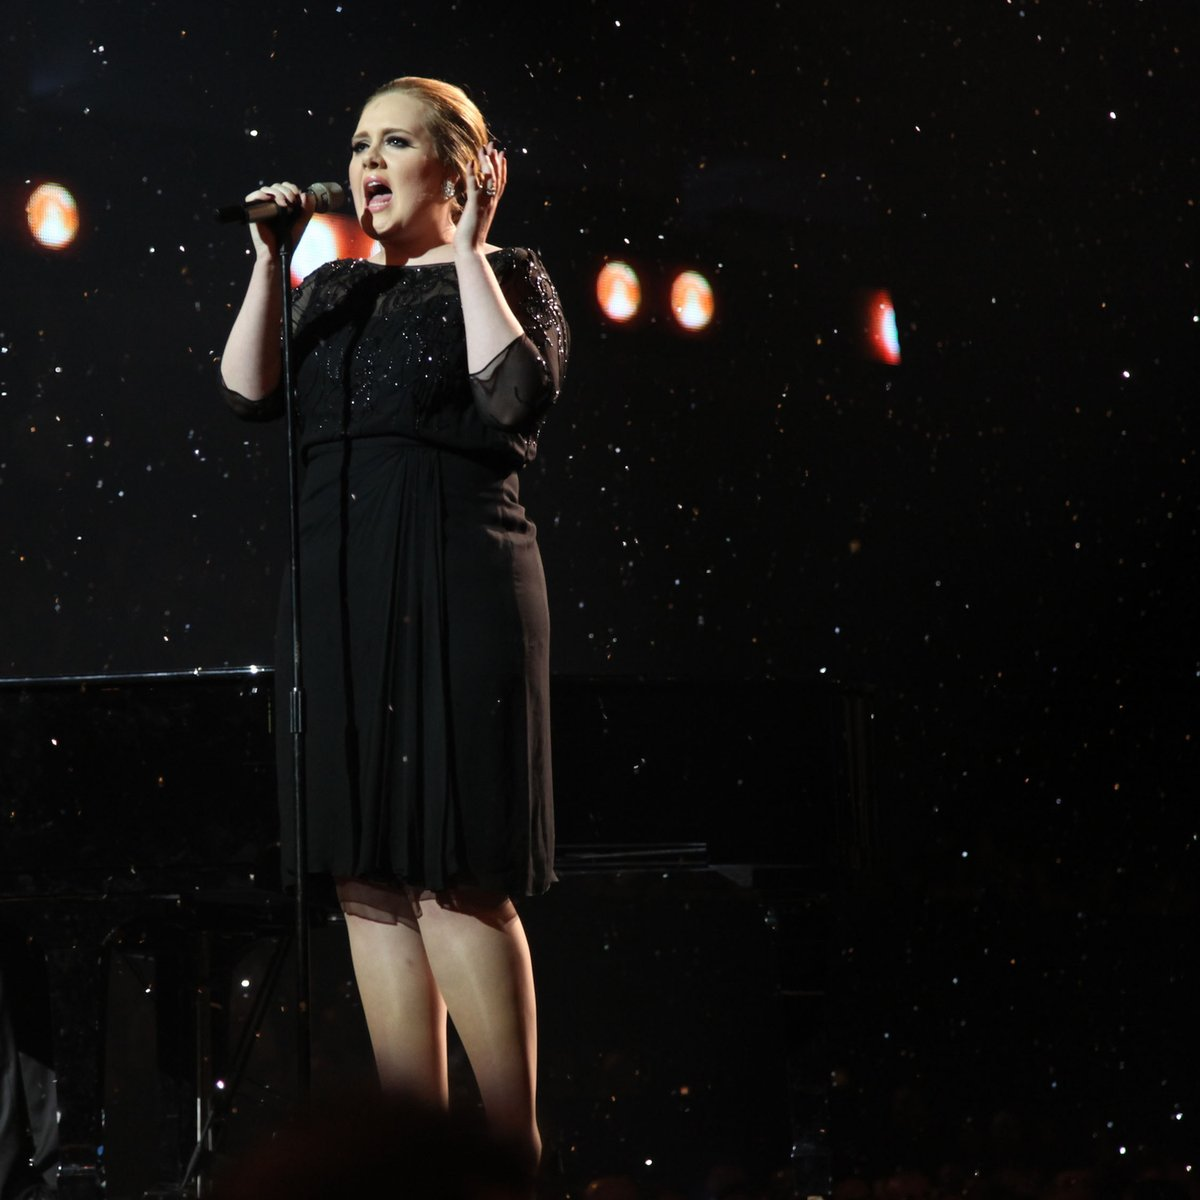 🎤 Let's kick it off with @Adele's first ever solo #BRITs performance in 2011 where she sang 'Someone Like You'. If she wasn't on your radar before that moment, then she definitely was afterwards 🤯💫